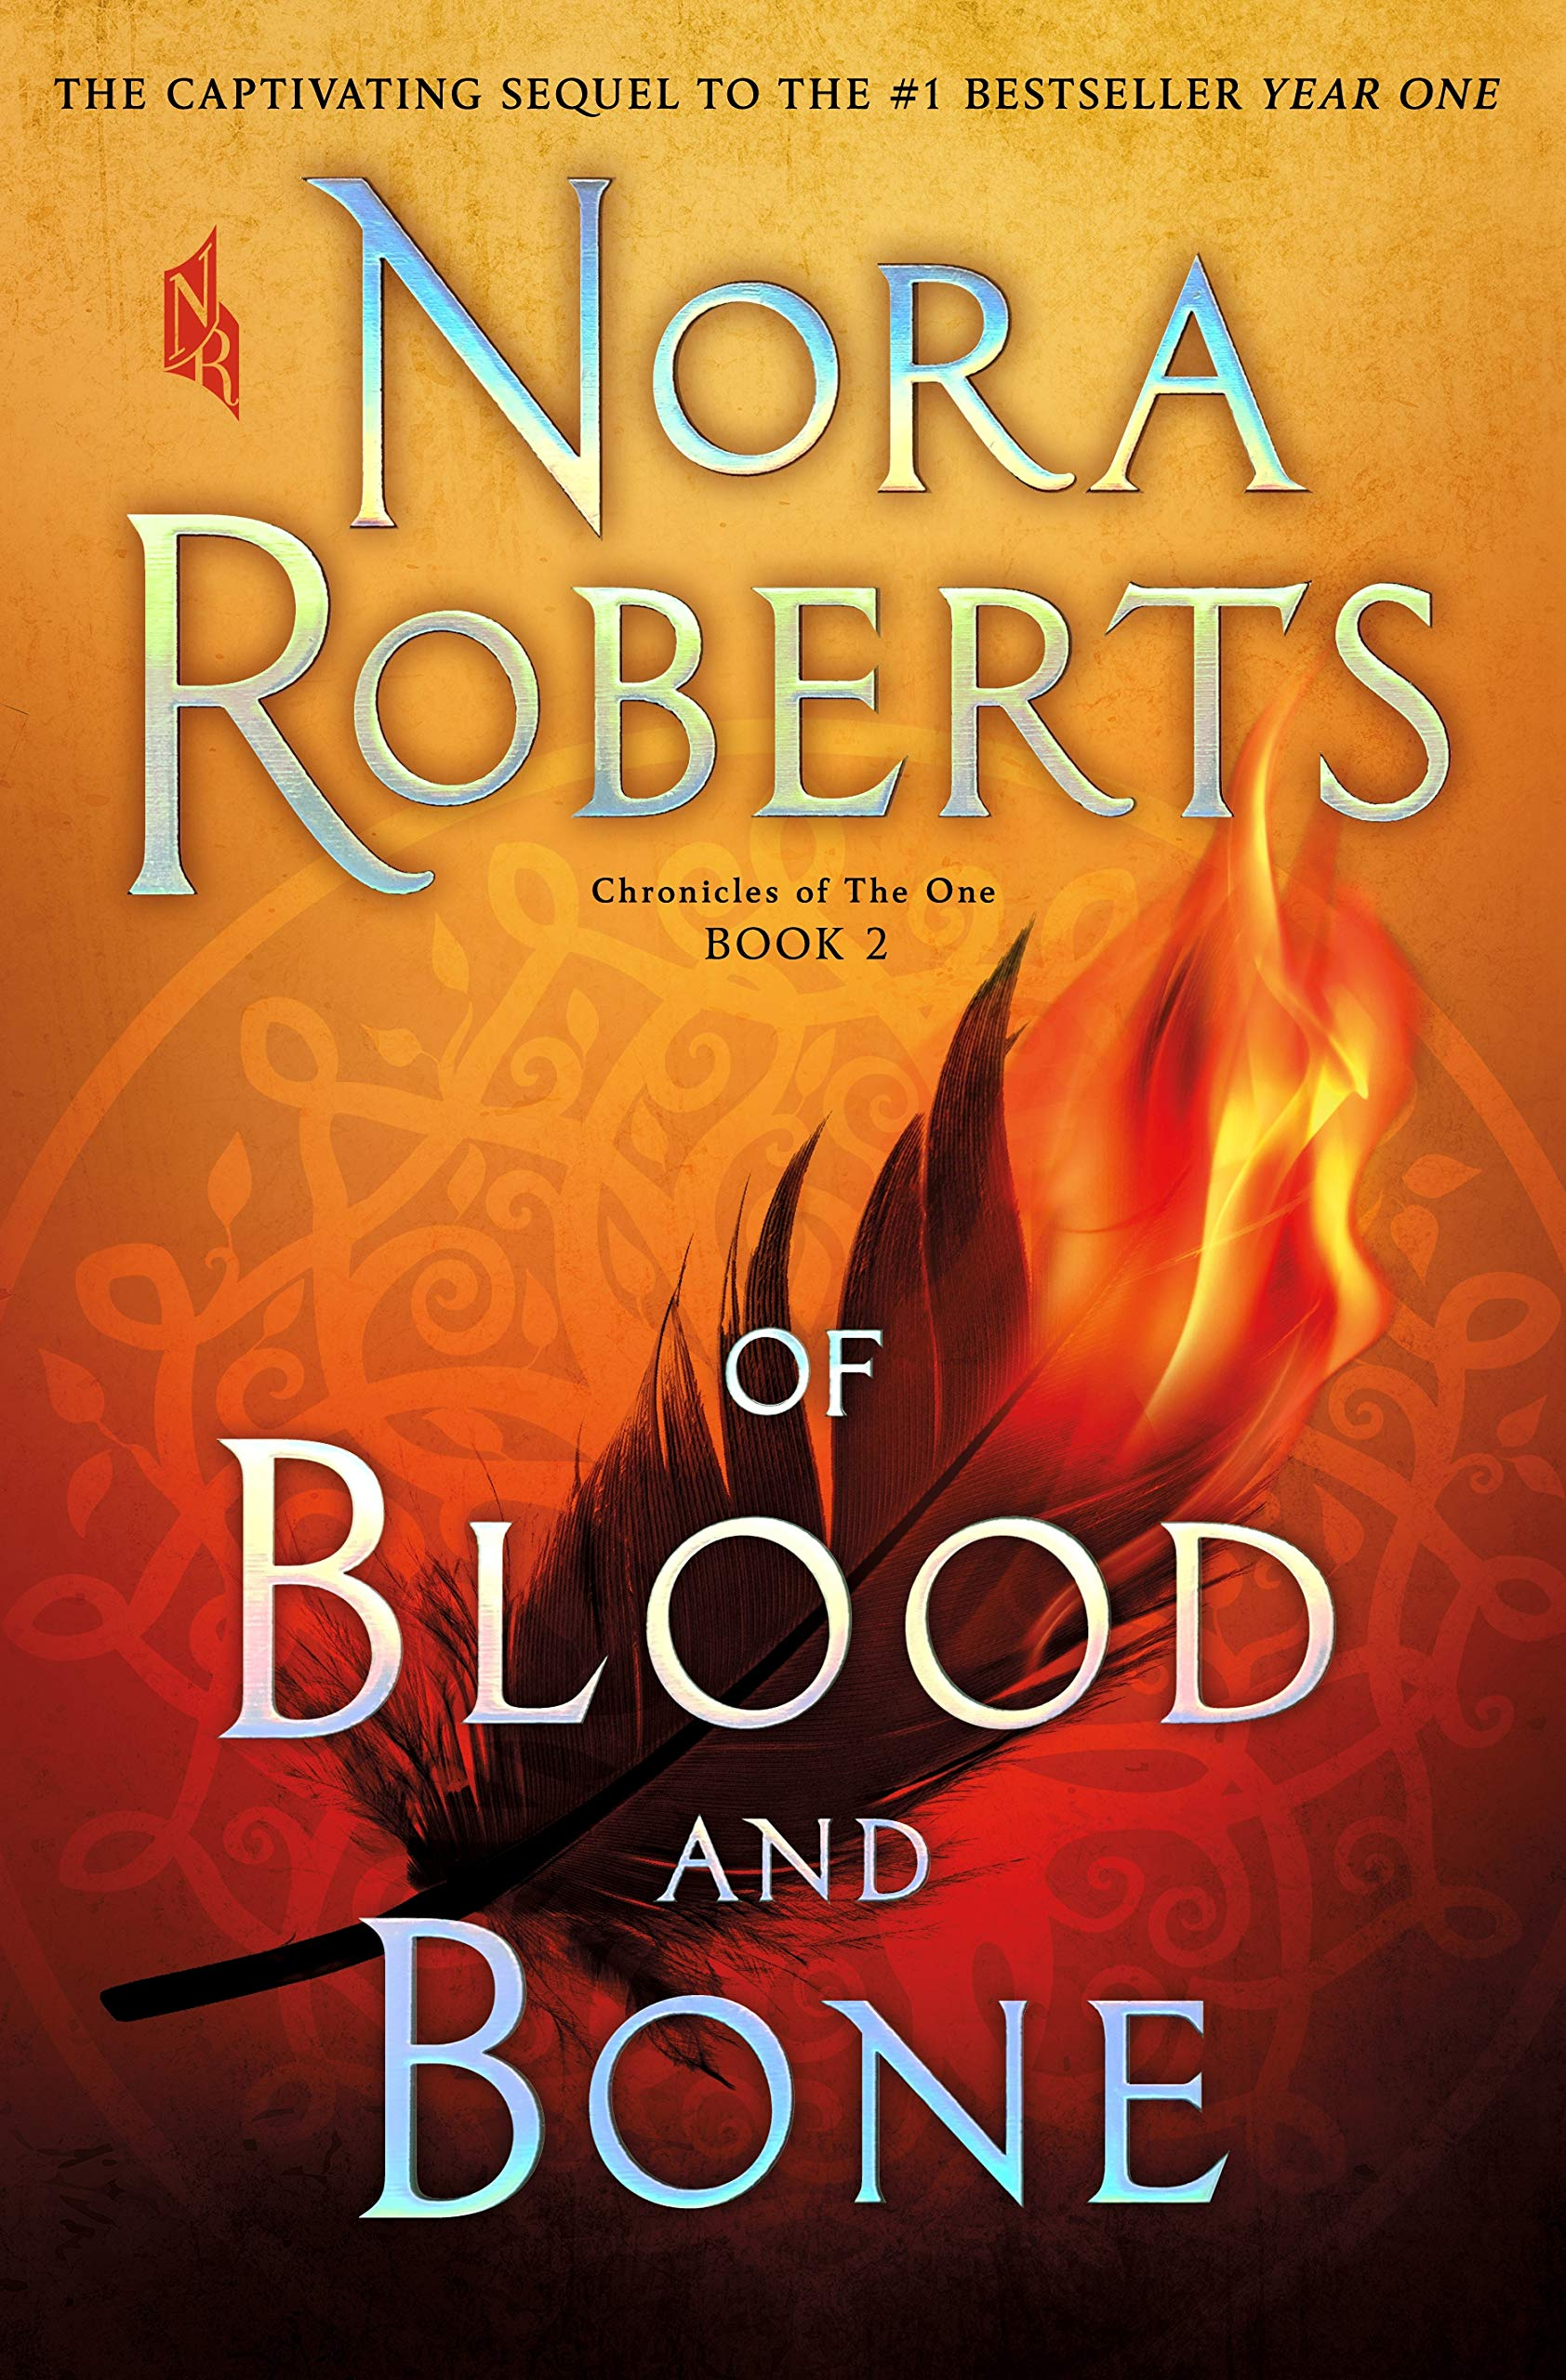 Amazon.com: Of Blood and Bone: Chronicles of The One, Book 2  (9781250122995): Nora Roberts: Books